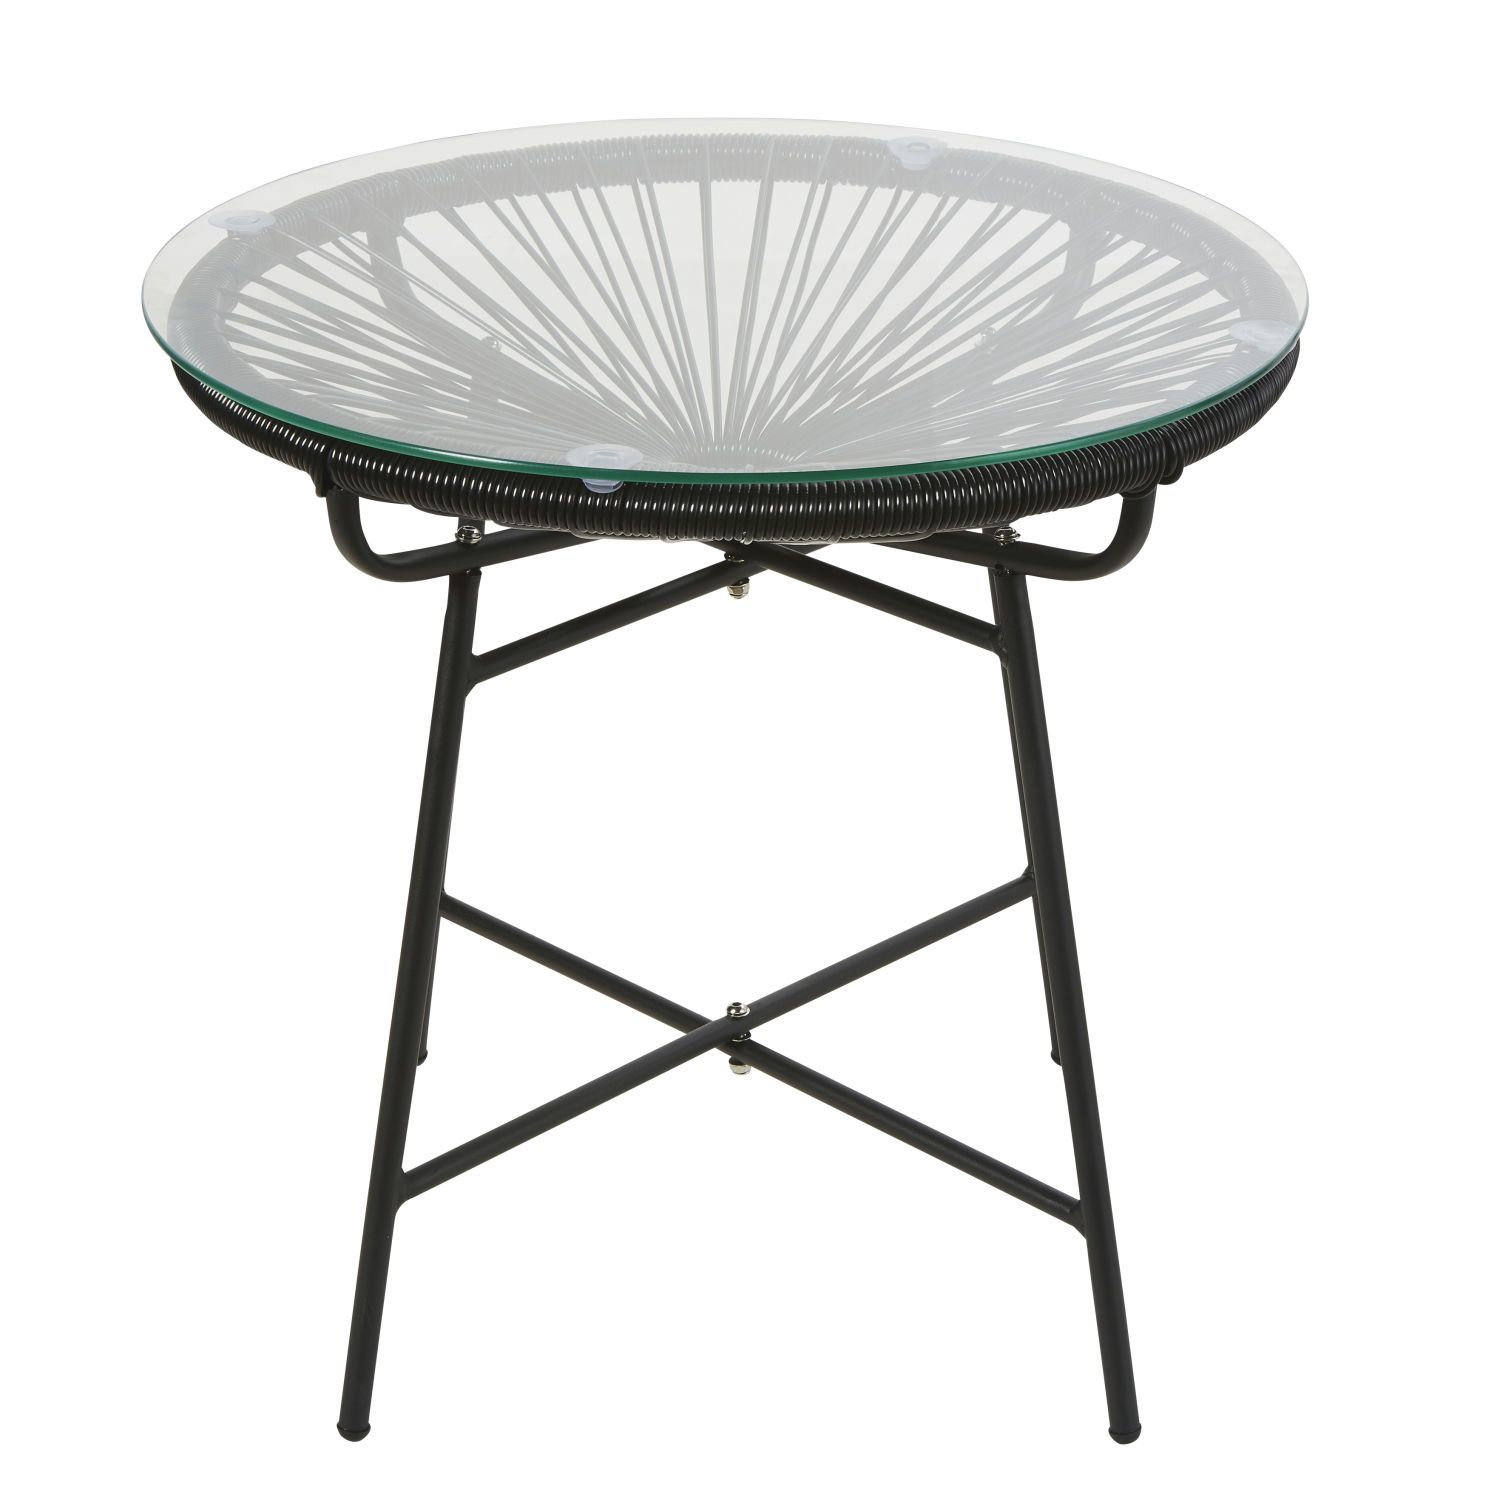 Black Resin And Glass Garden Coffee Table Garden Coffee Table Coffee Table Garden Table And Chairs